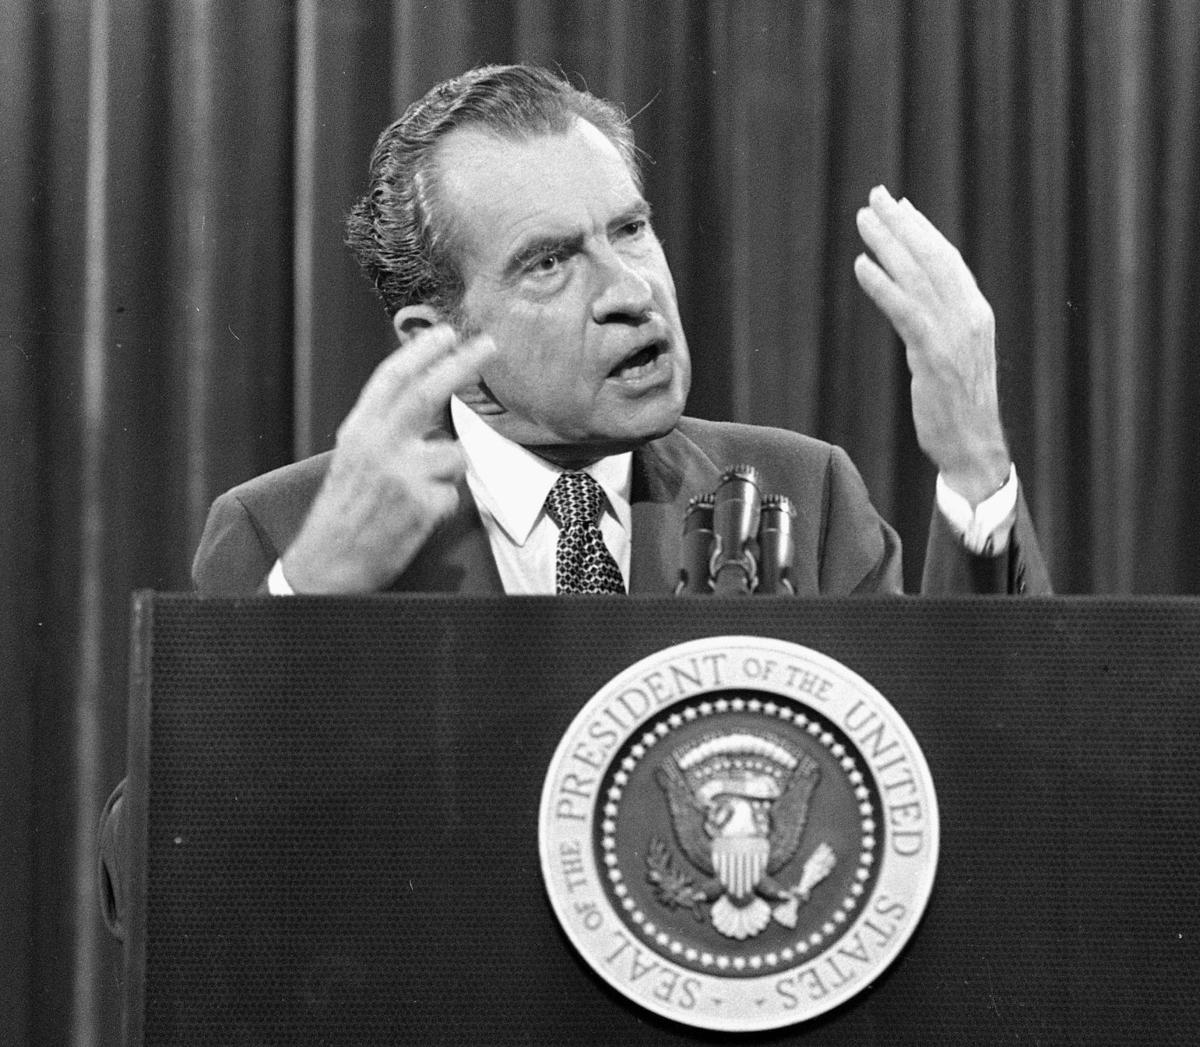 40 years after Watergate: How Nixon's descent began